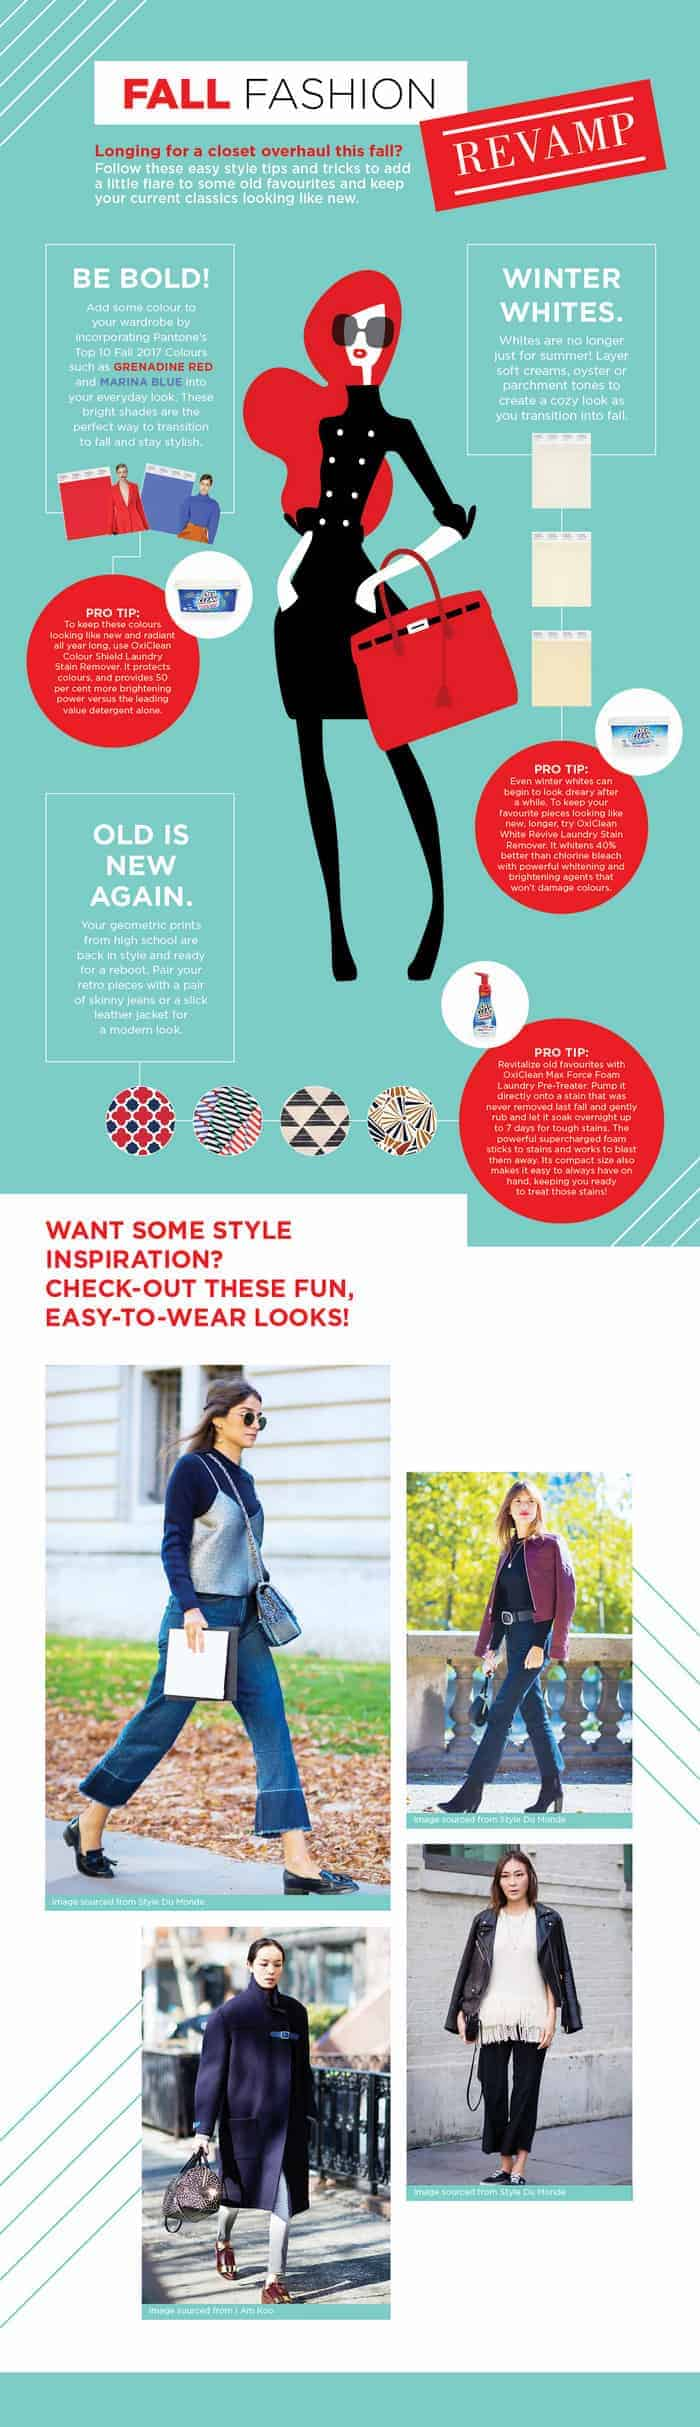 Revitalize your fall wardrobe without spending a fortune with these 3 easy tips and great look ideas! Check them out!